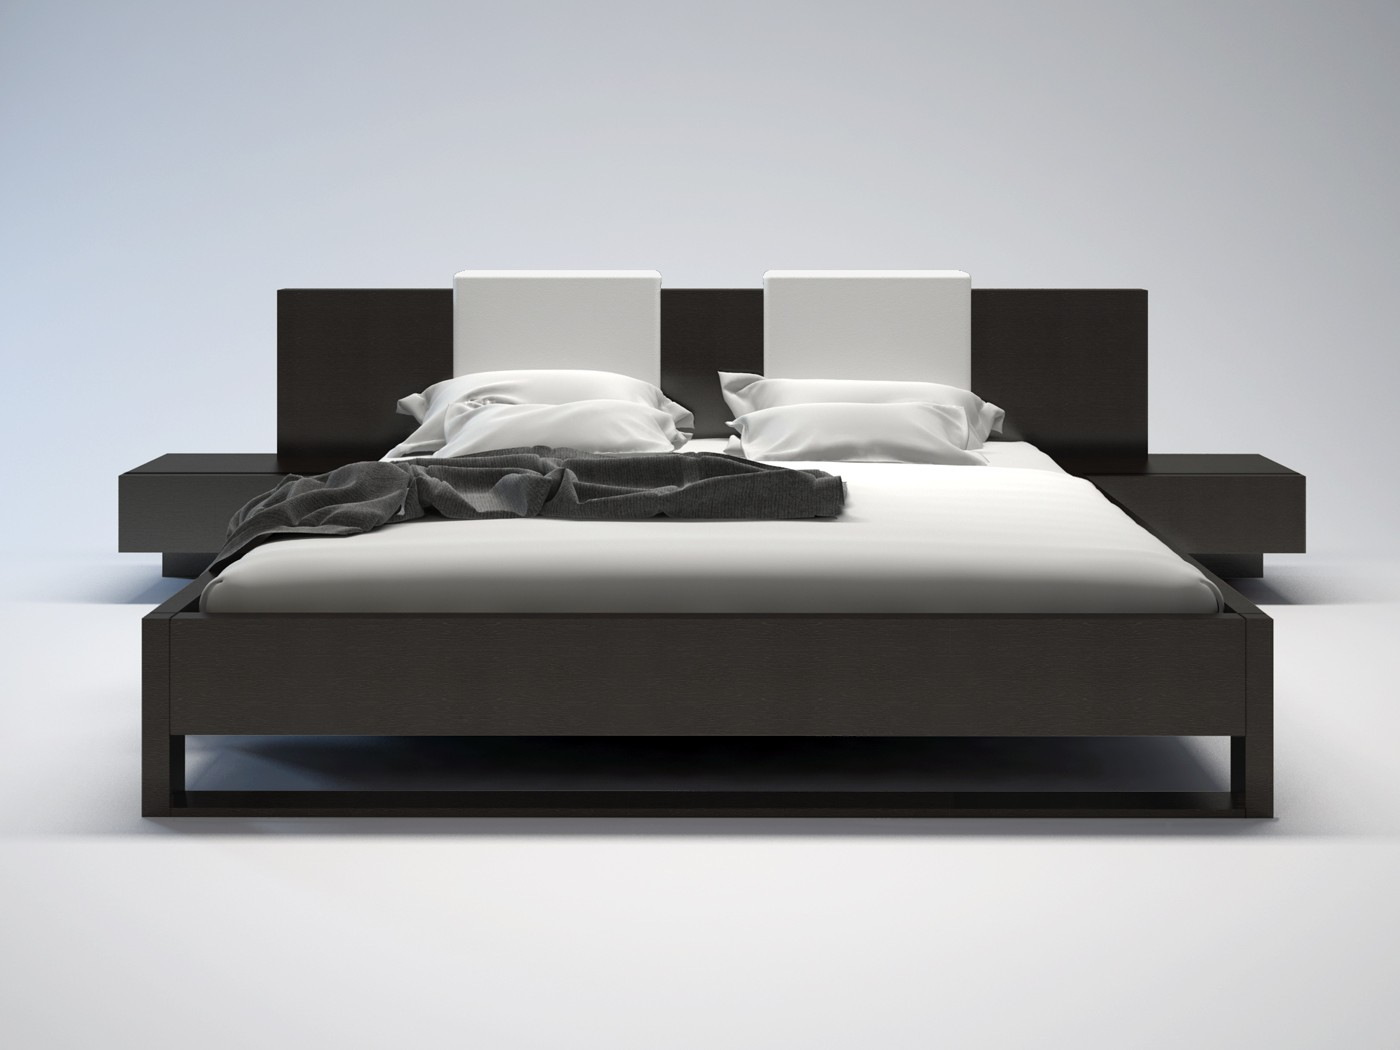 Monroe Modern Bed By Modloft Nova Interiors